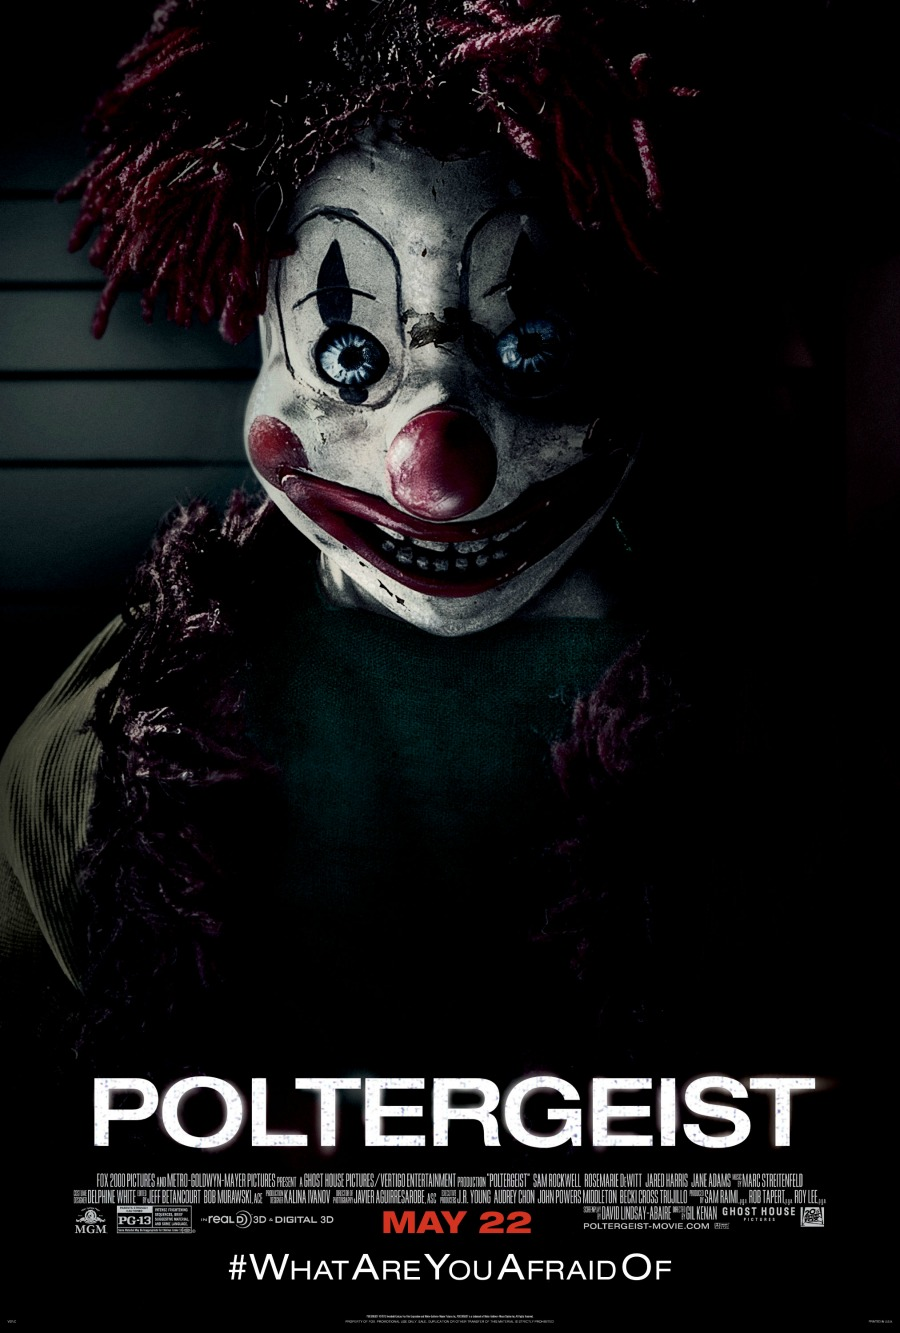 Poltergeist (2015) movie poster 2